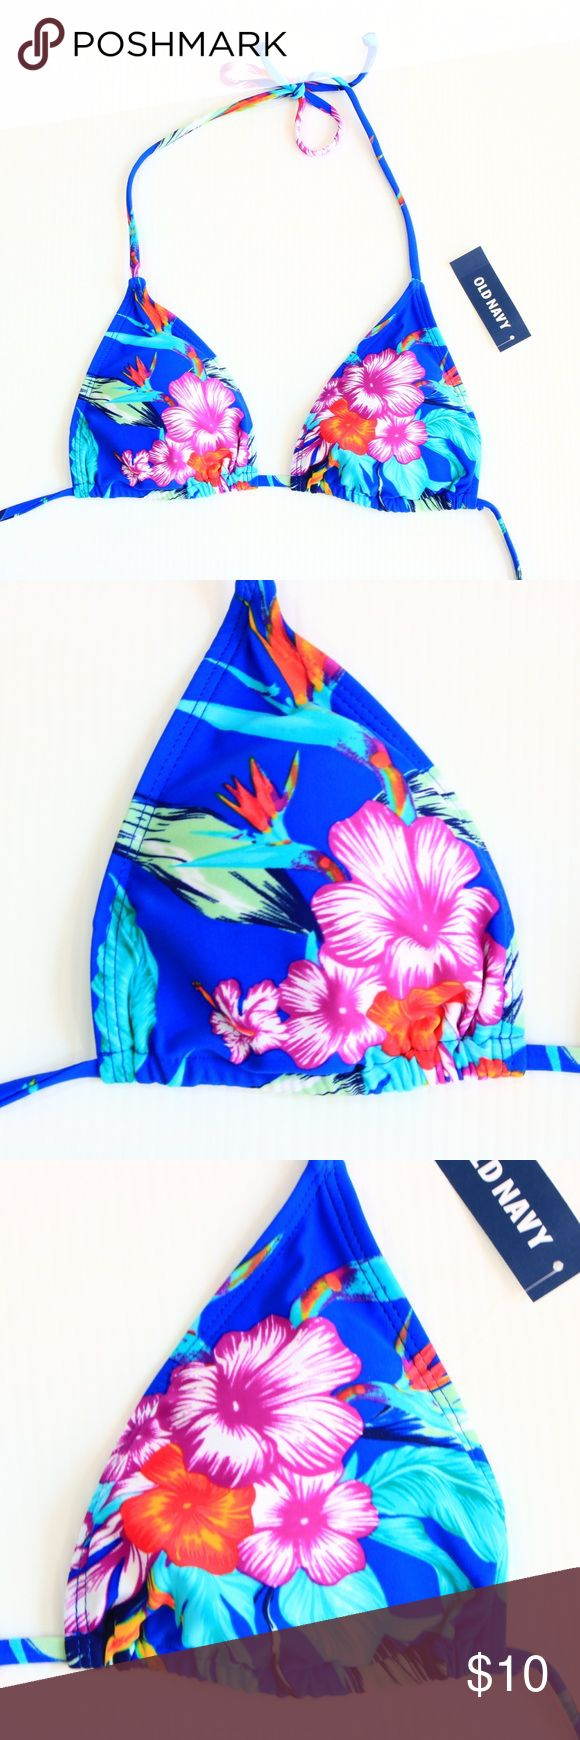 Old Navy Triangle Bikini Top Floral Blue Beautiful and colorful Bikini Top. It has removable padding and the tags are still attached. Old Navy Swim Bikinis